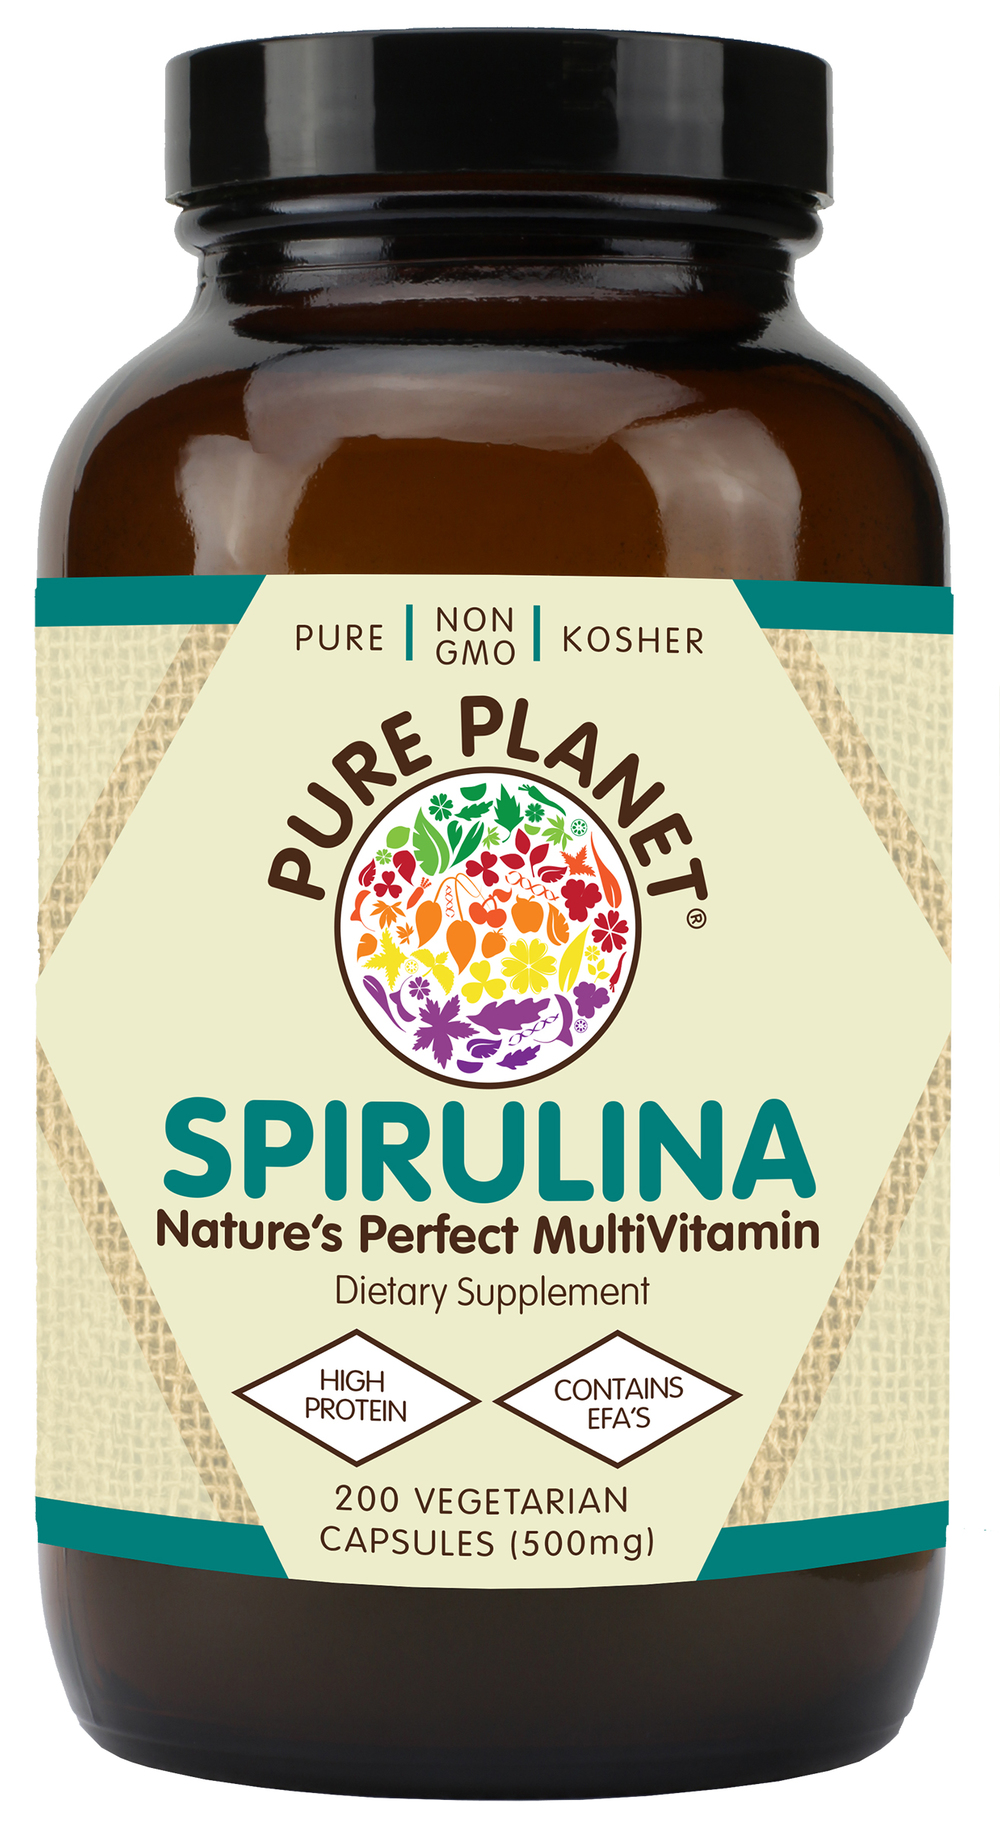 009140186341_Pure Planet_Spirulina _200 vcap_500mg.jpg